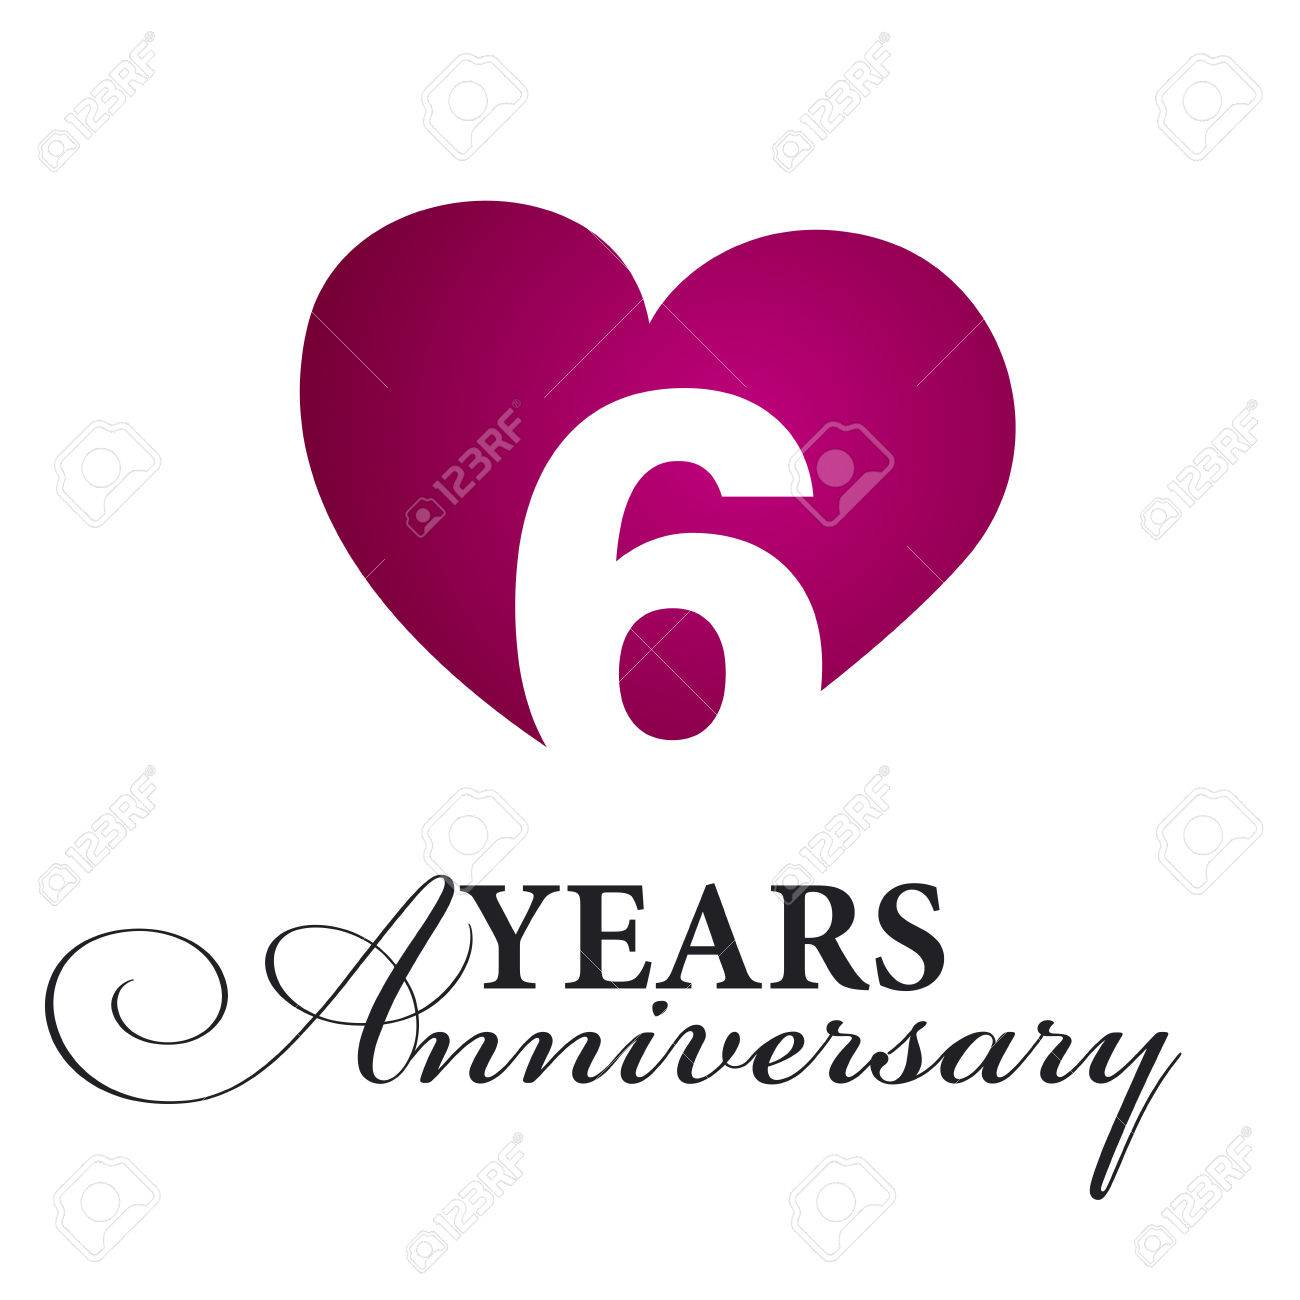 6 Years Anniversary White Background Royalty Free Cliparts Vectors And Stock Illustration Image 51293419